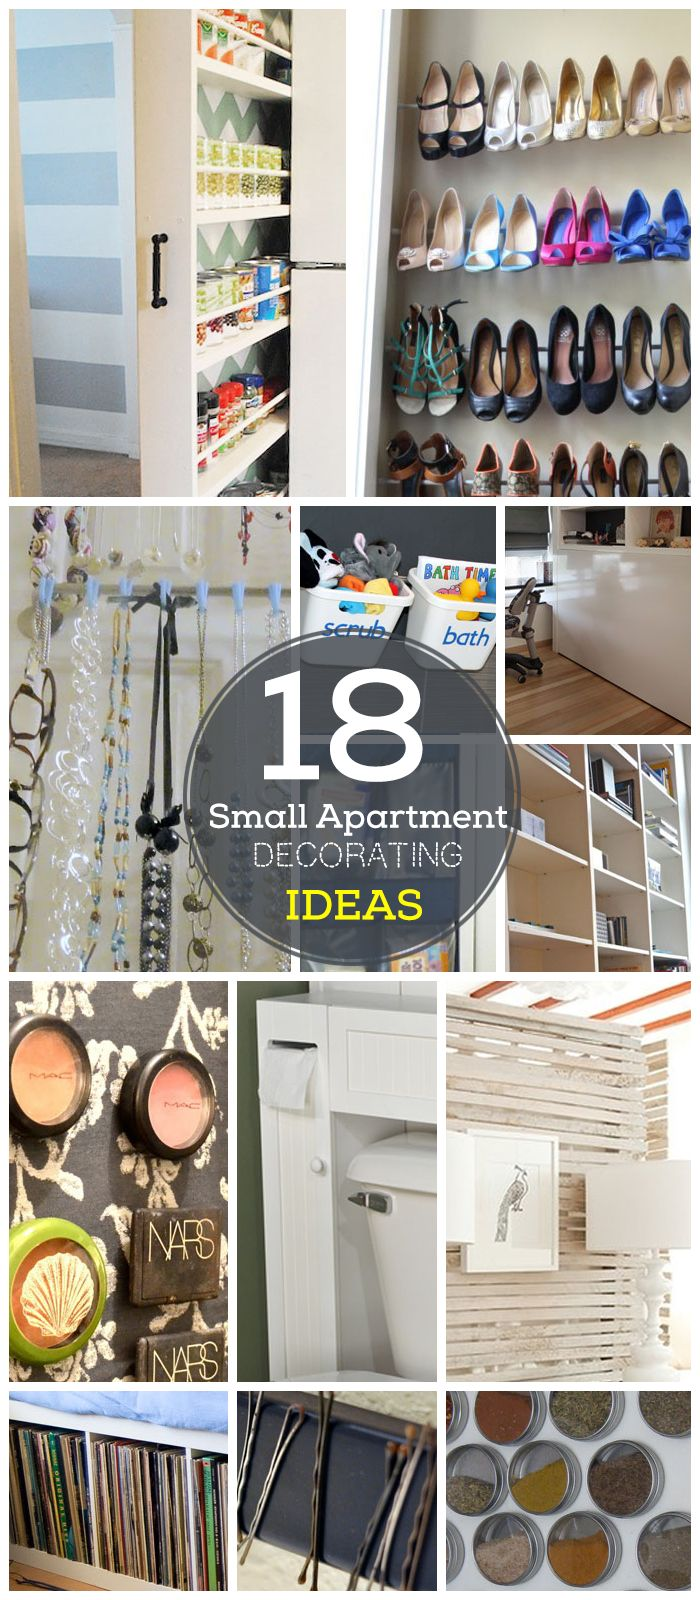 18 DIY Small Apartment Decorating Ideas on a Budget | Click for Tutorials |  DIY Organization Ideas for Small Spaces